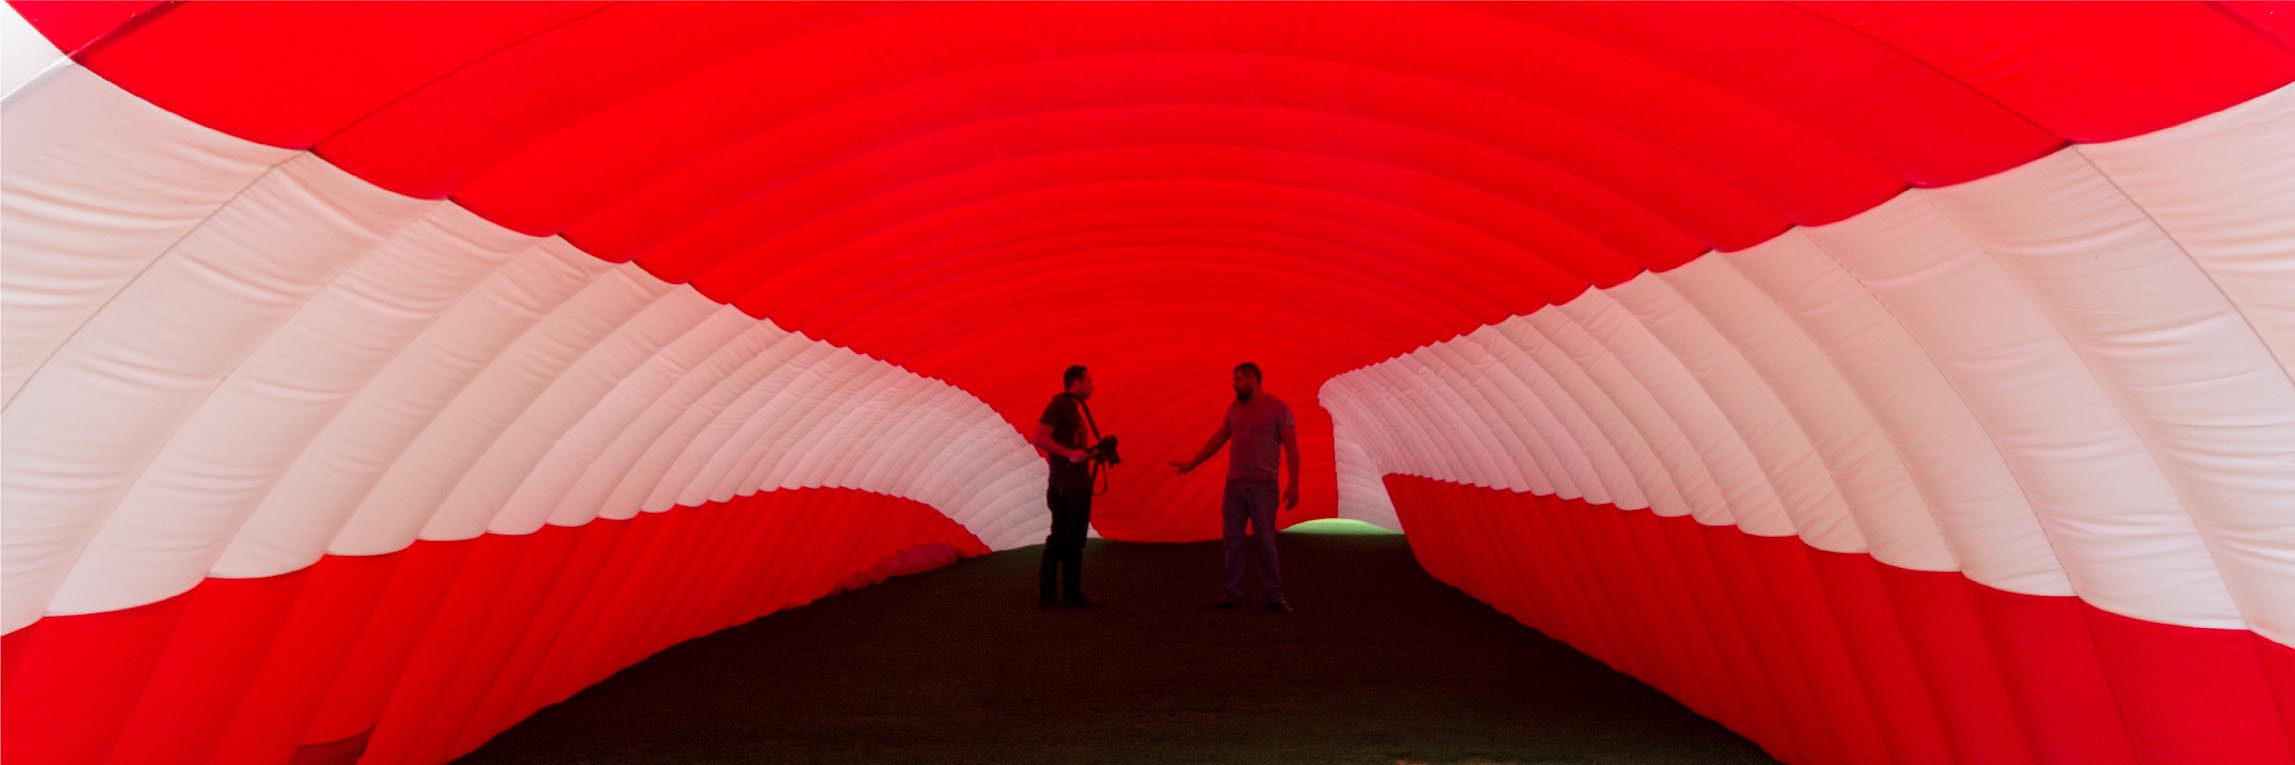 red inflatable tunnel